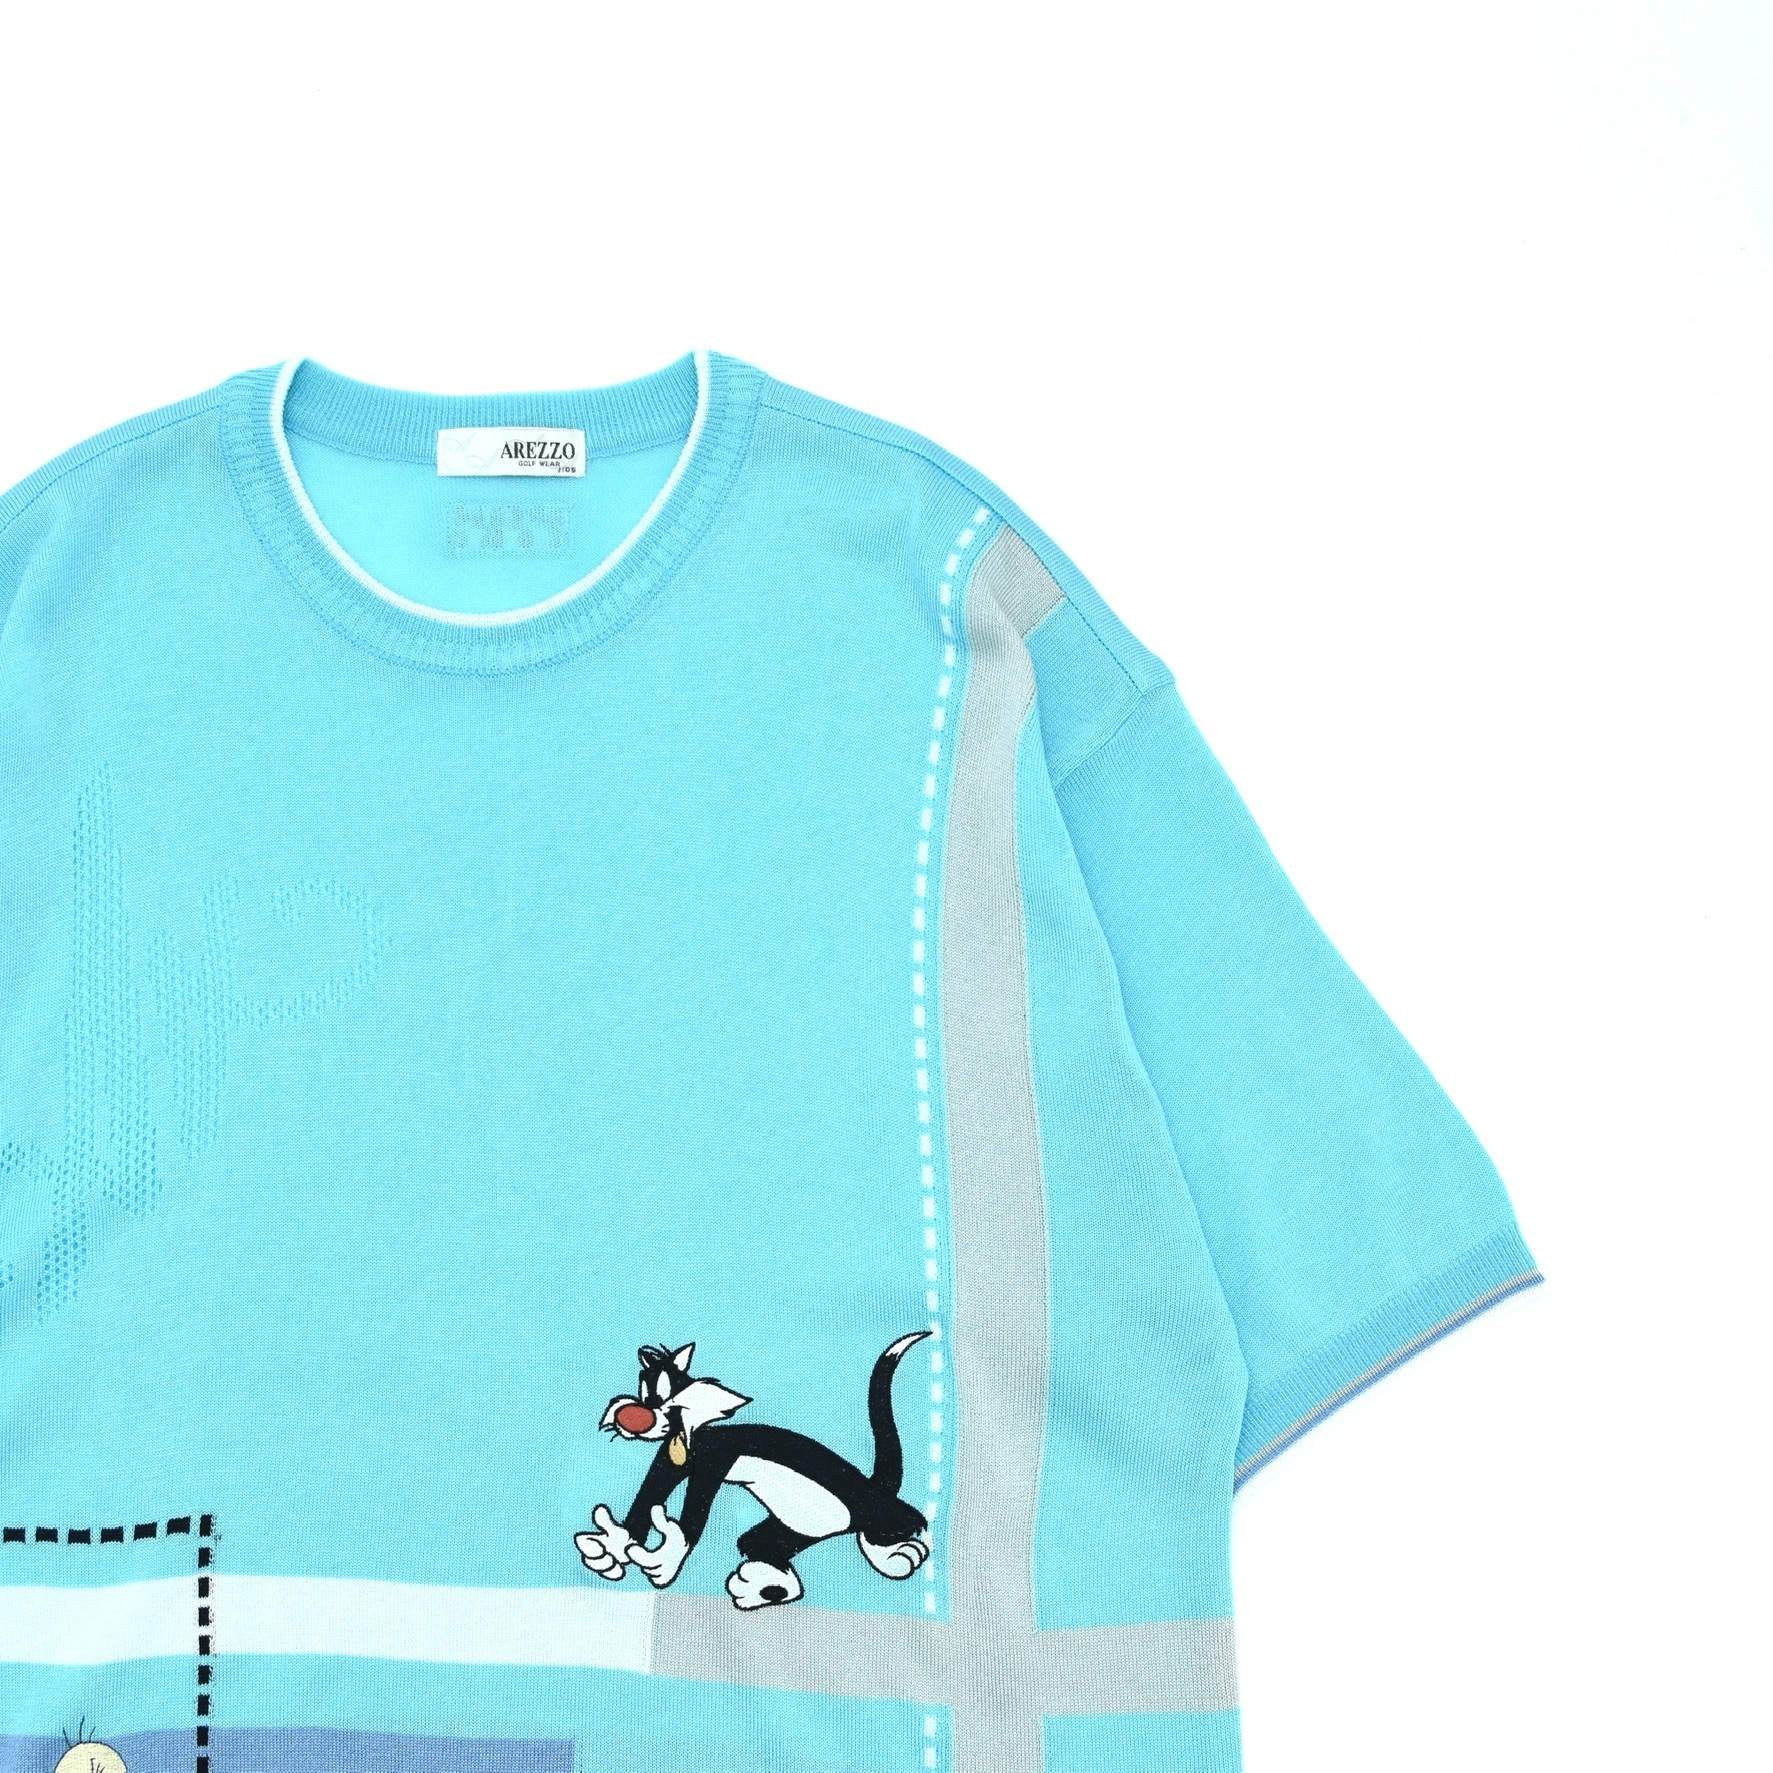 Tweety×Sylvester embroidery summer knit